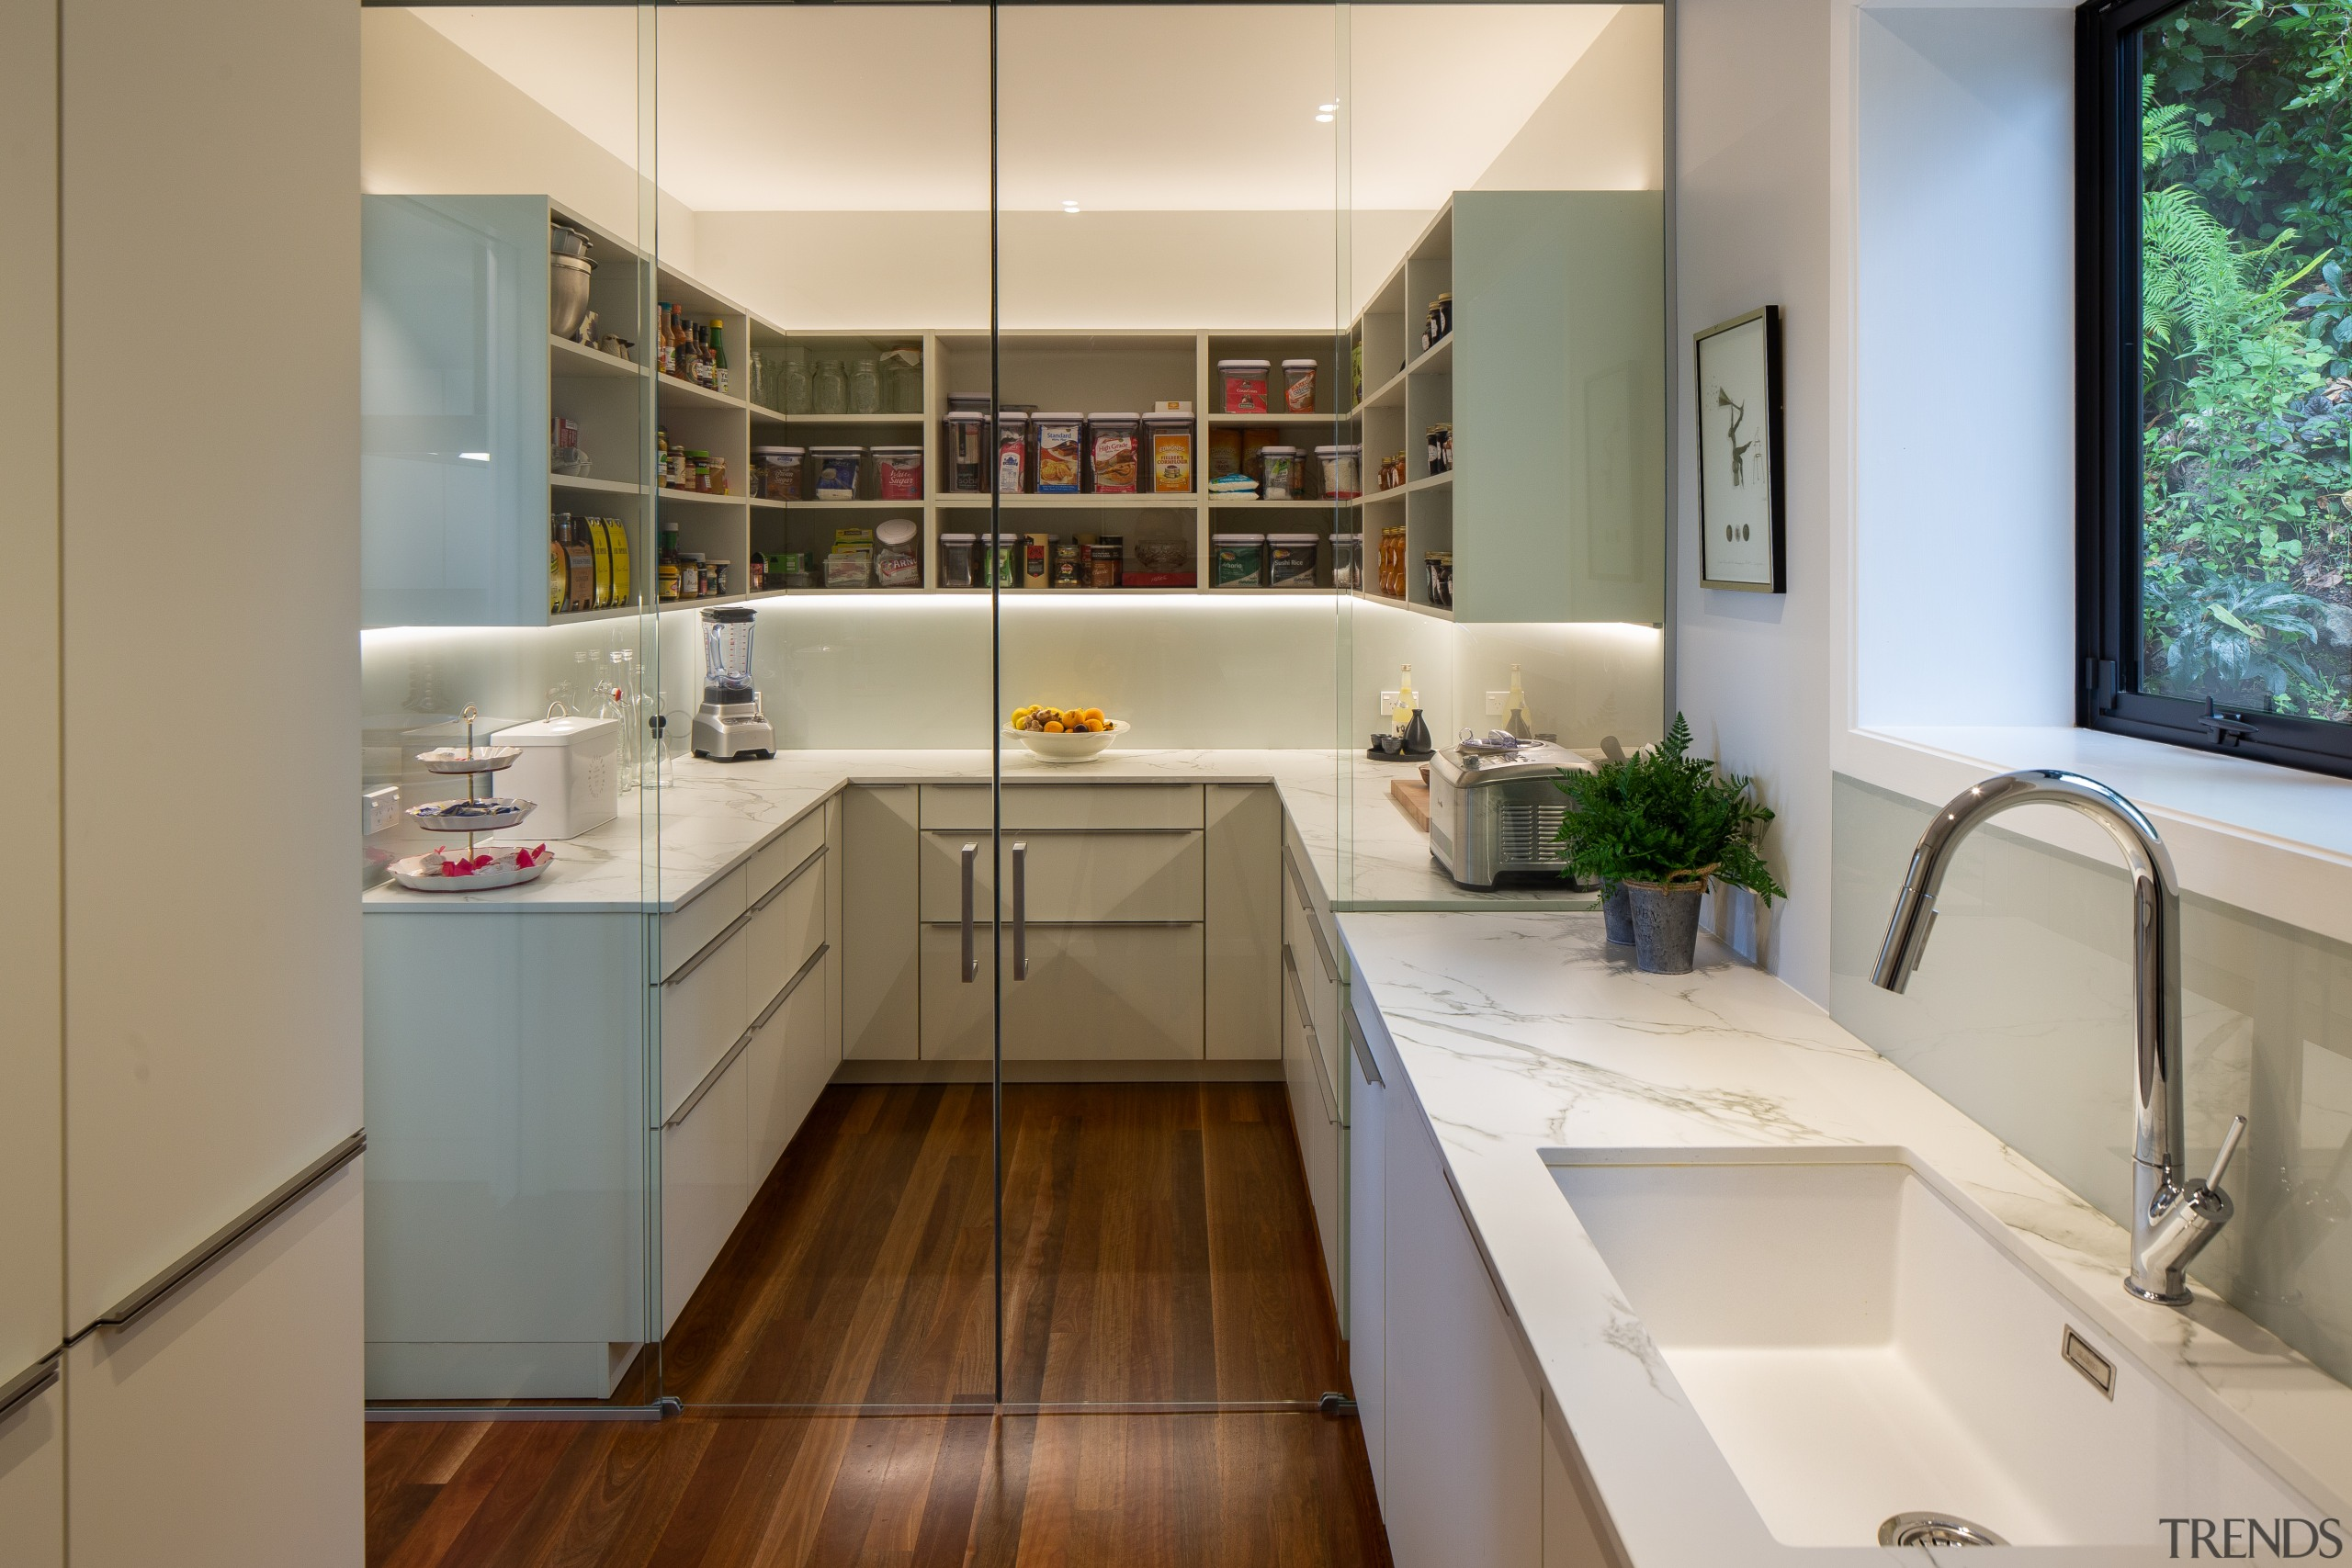 For this kitchen, a glass wall and door architecture, bathroom, building, cabinetry, ceiling, countertop, cupboard, design, floor, flooring, furniture, hardwood, home, house, interior design, kitchen, material property, property, real estate, room, sink, tile, wood flooring, gray, brown